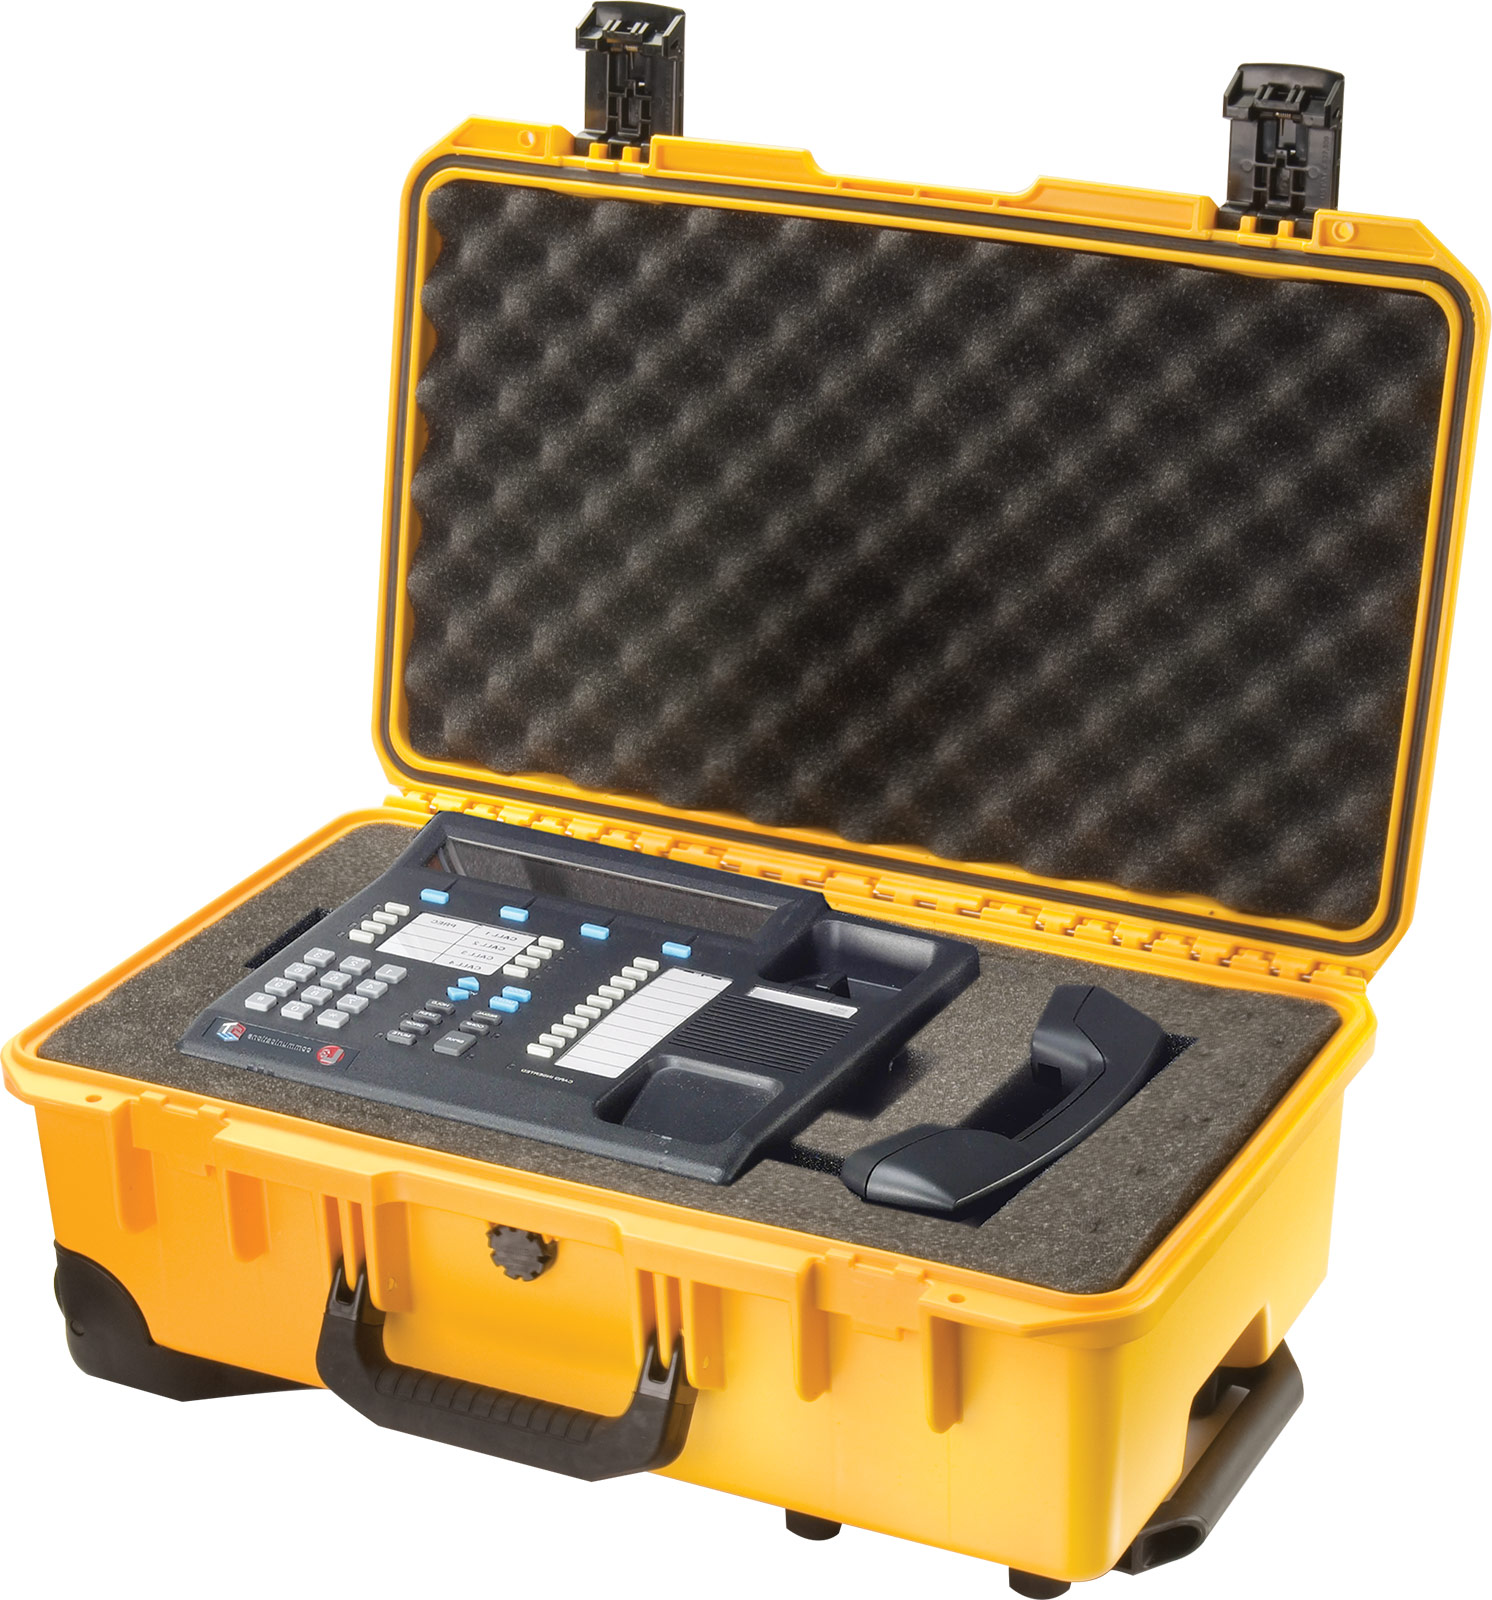 pelican im2500 yellow carry on case